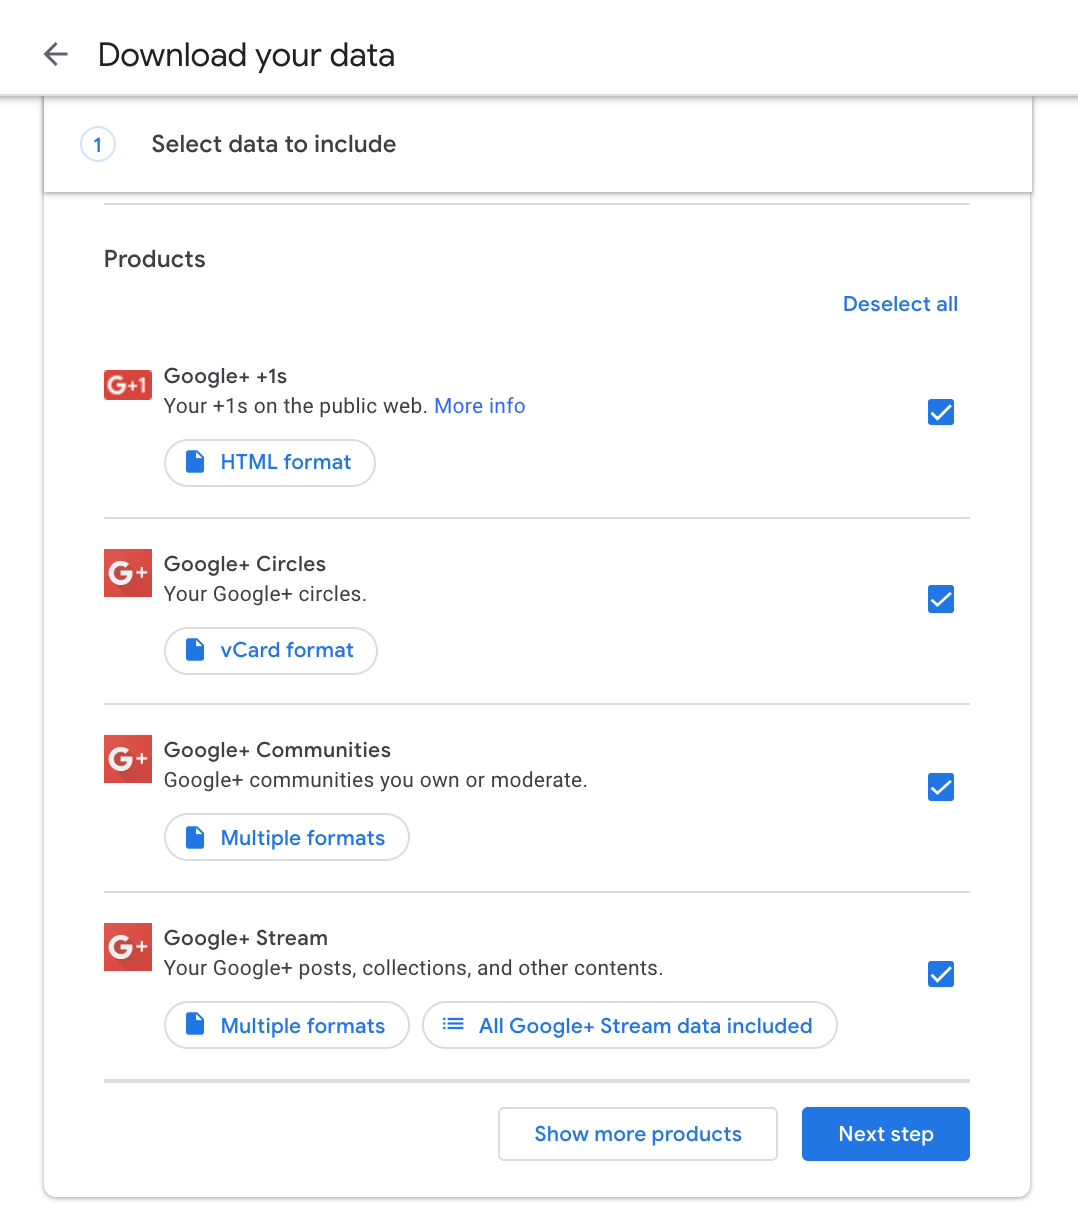 Google+ Download Data